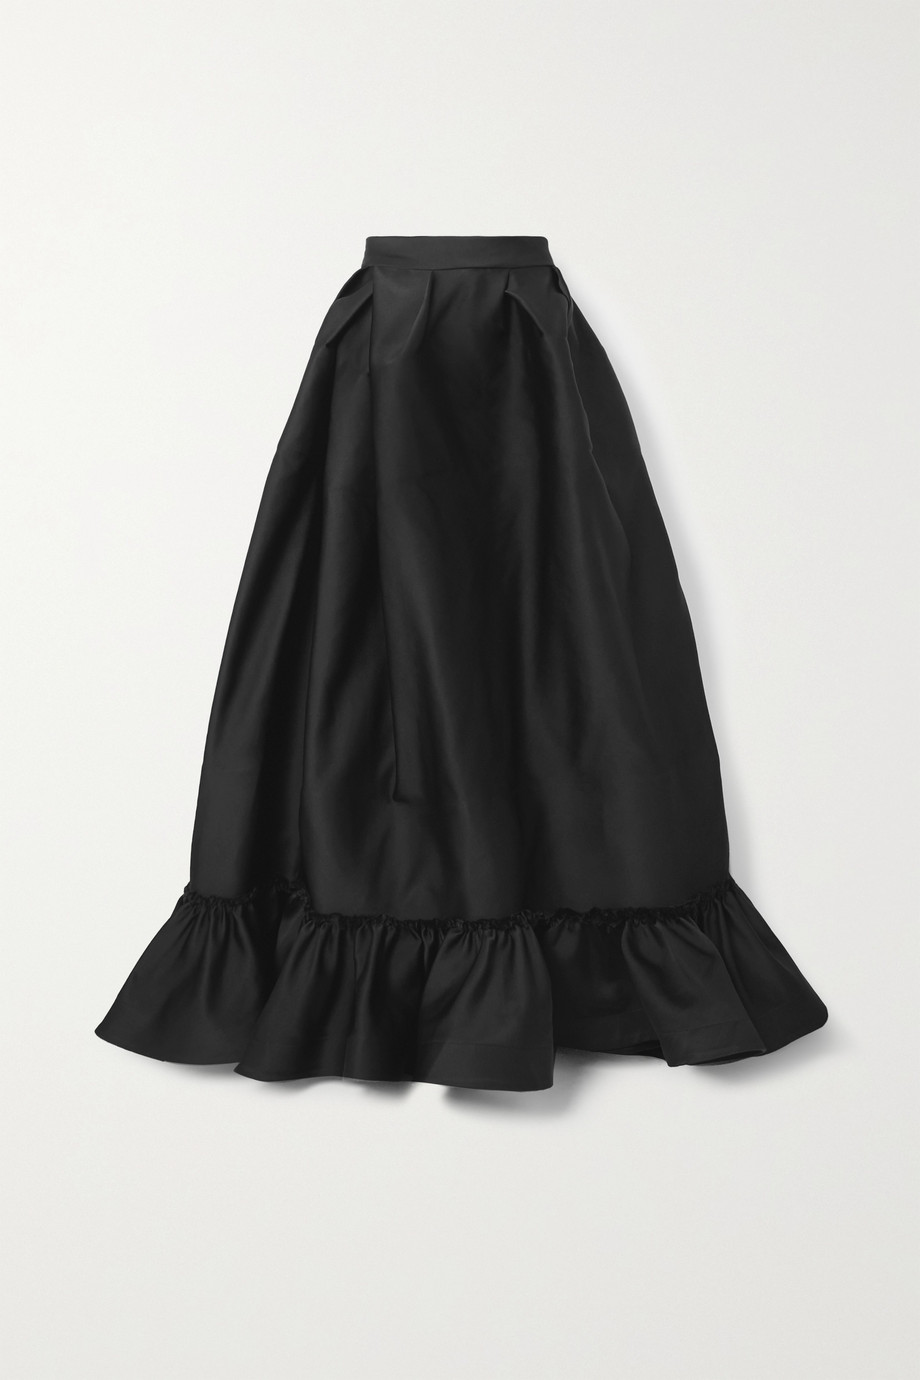 AZ FACTORY Switchwear bow-detailed recycled duchesse-satin maxi skirt